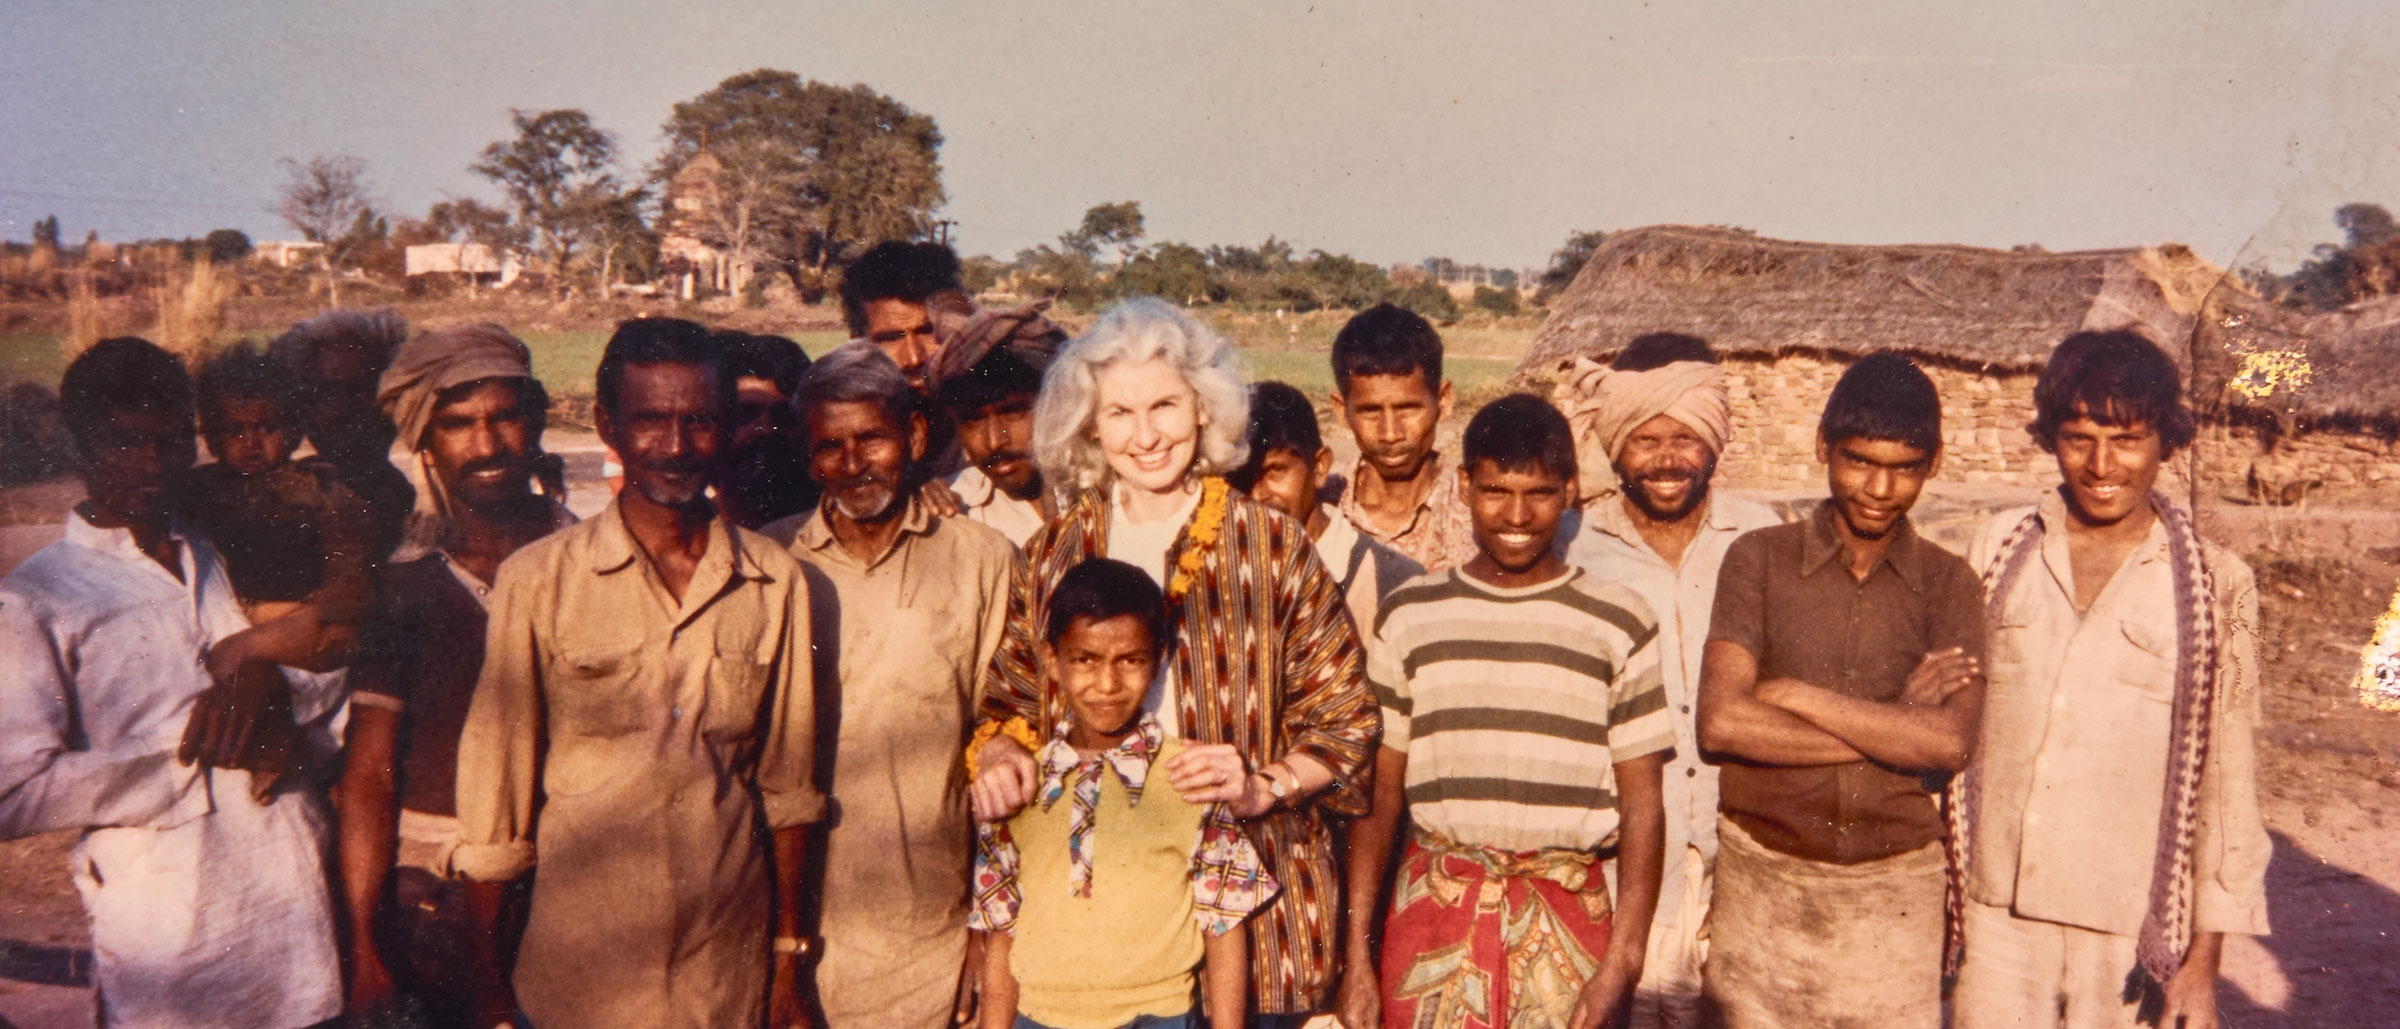 Elizabeth Moynihan posing for a photo with a group of Indian locals